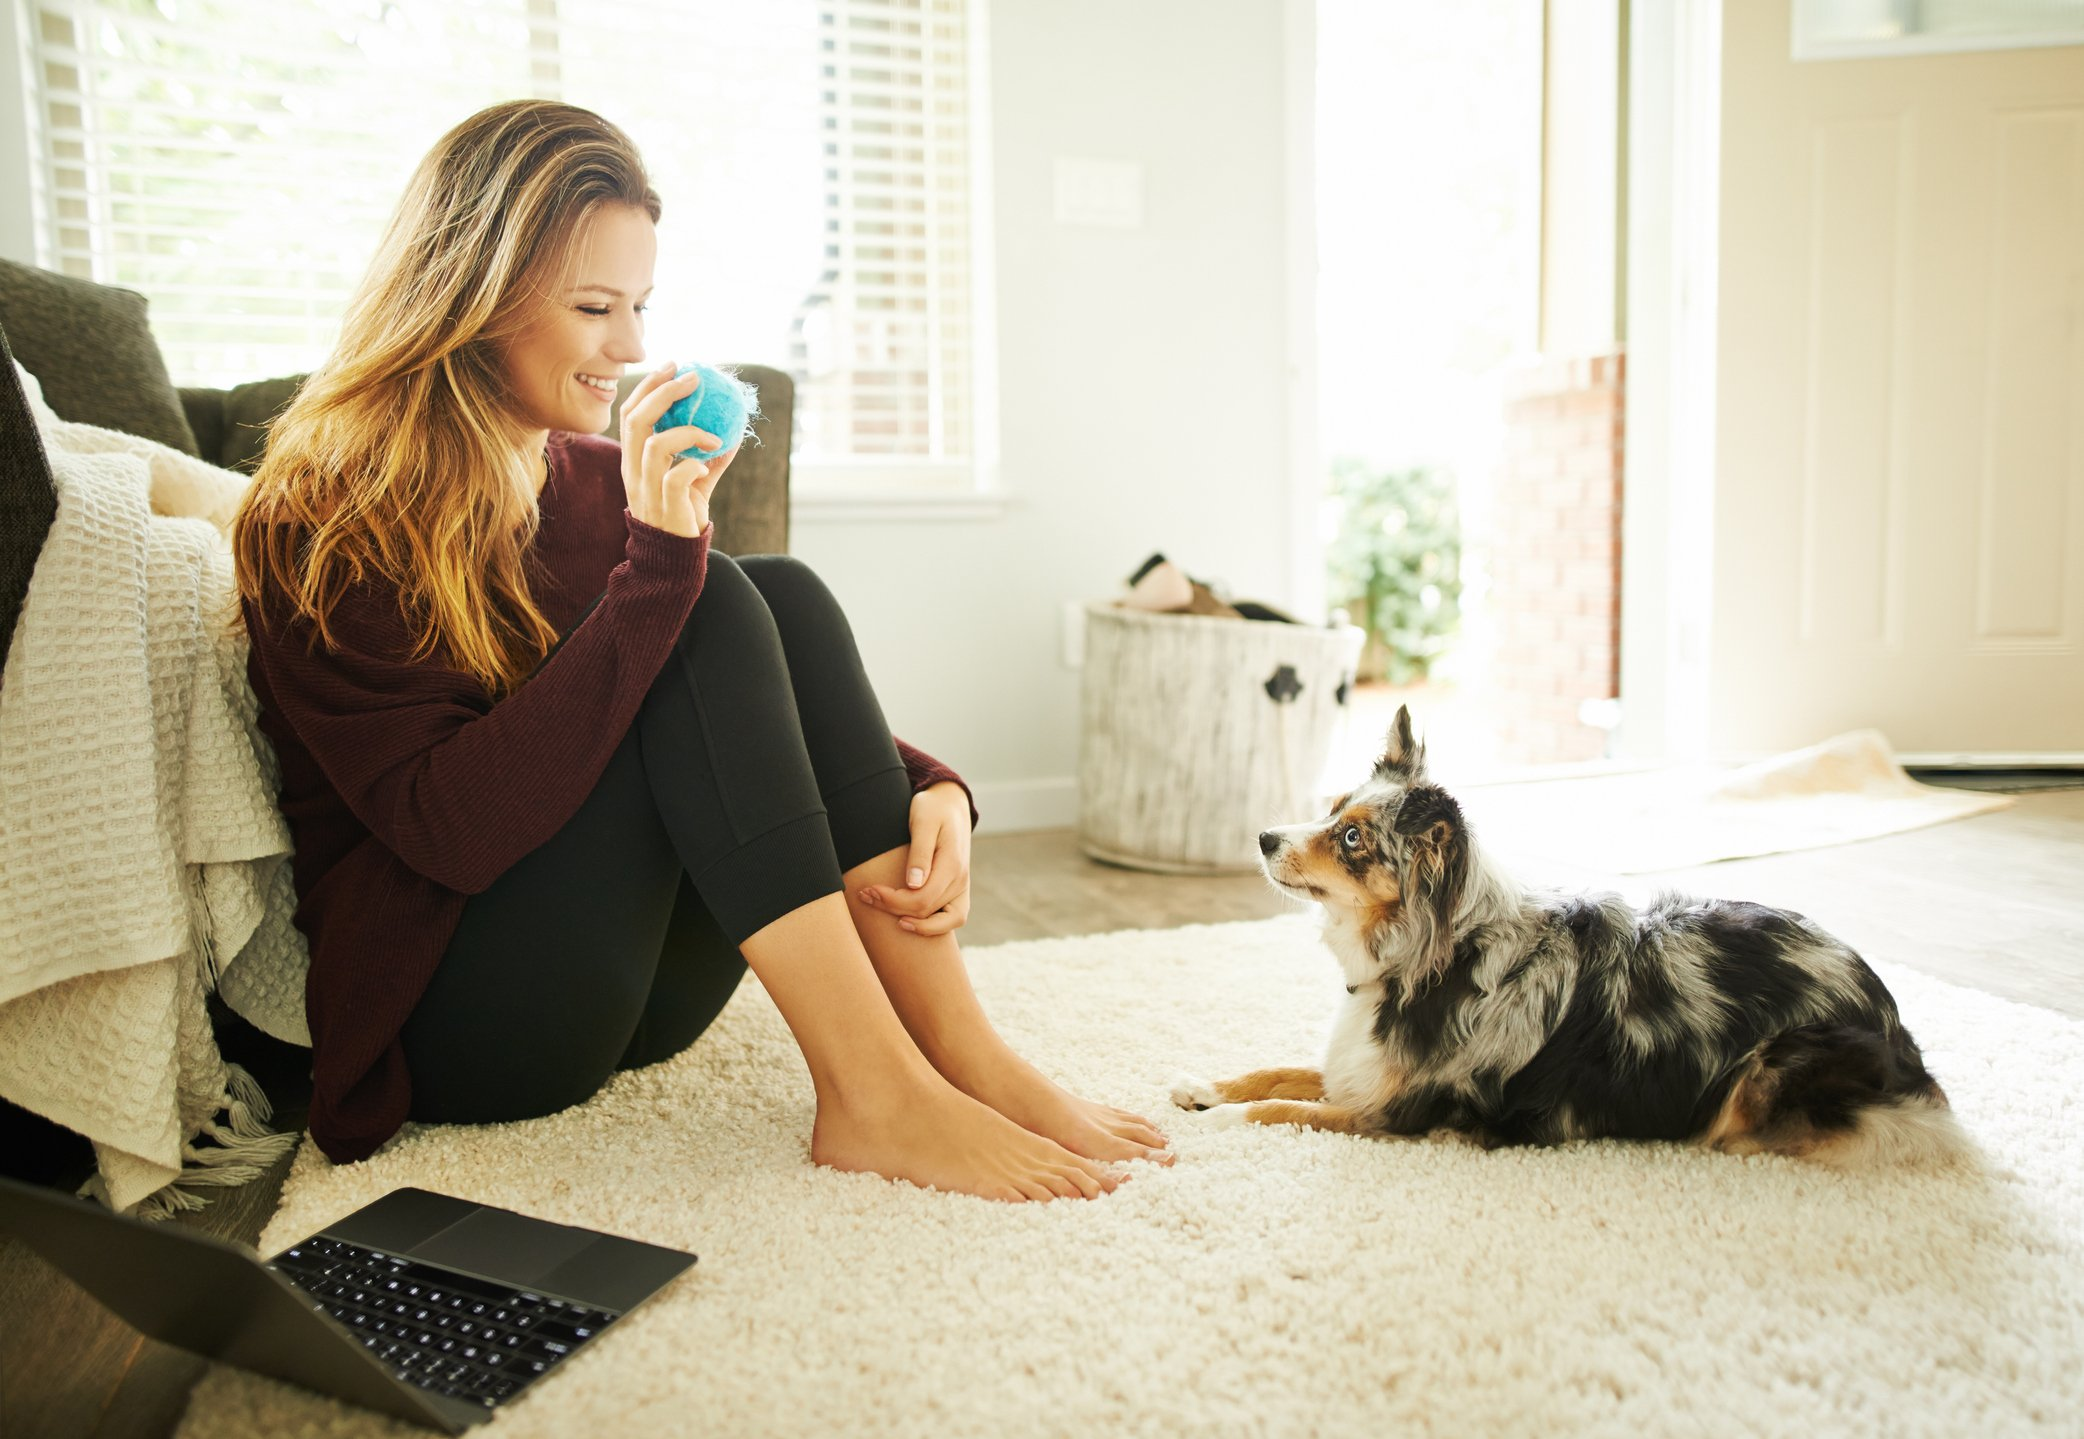 Shot of a young woman spending quality time with her dog at home